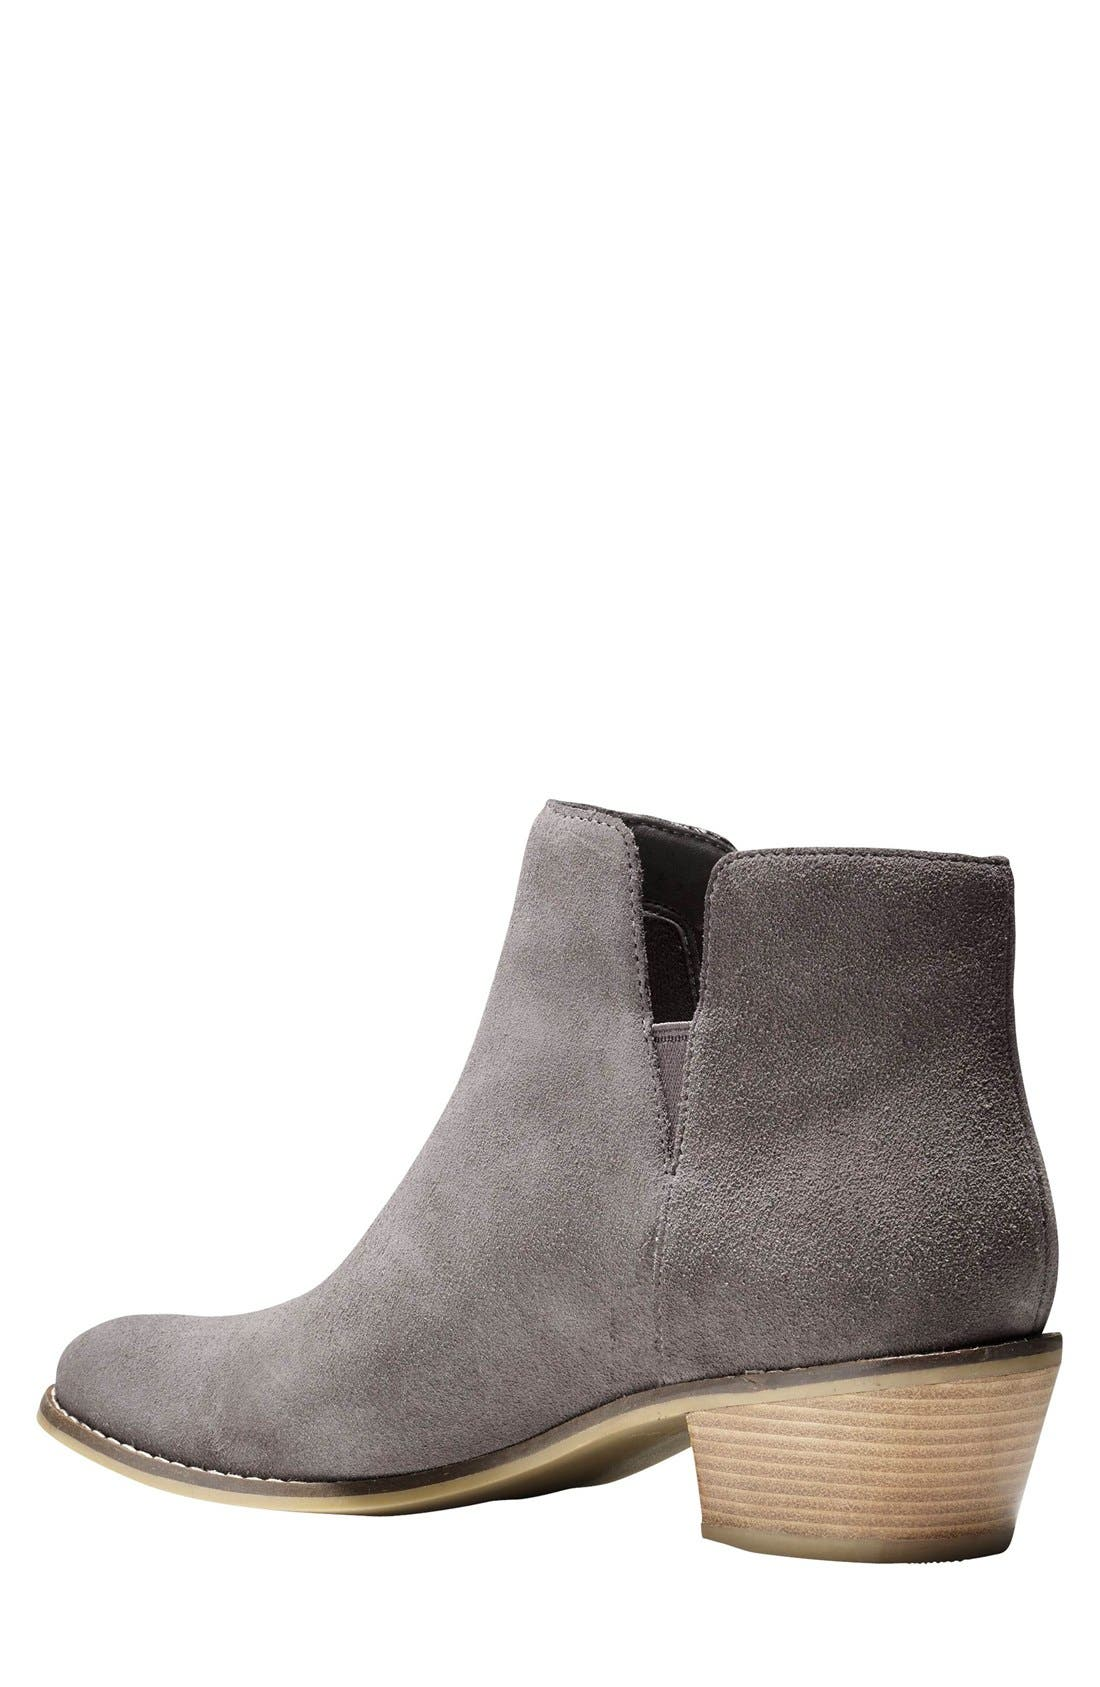 'Abbot' Chelsea Boot,                             Alternate thumbnail 43, color,